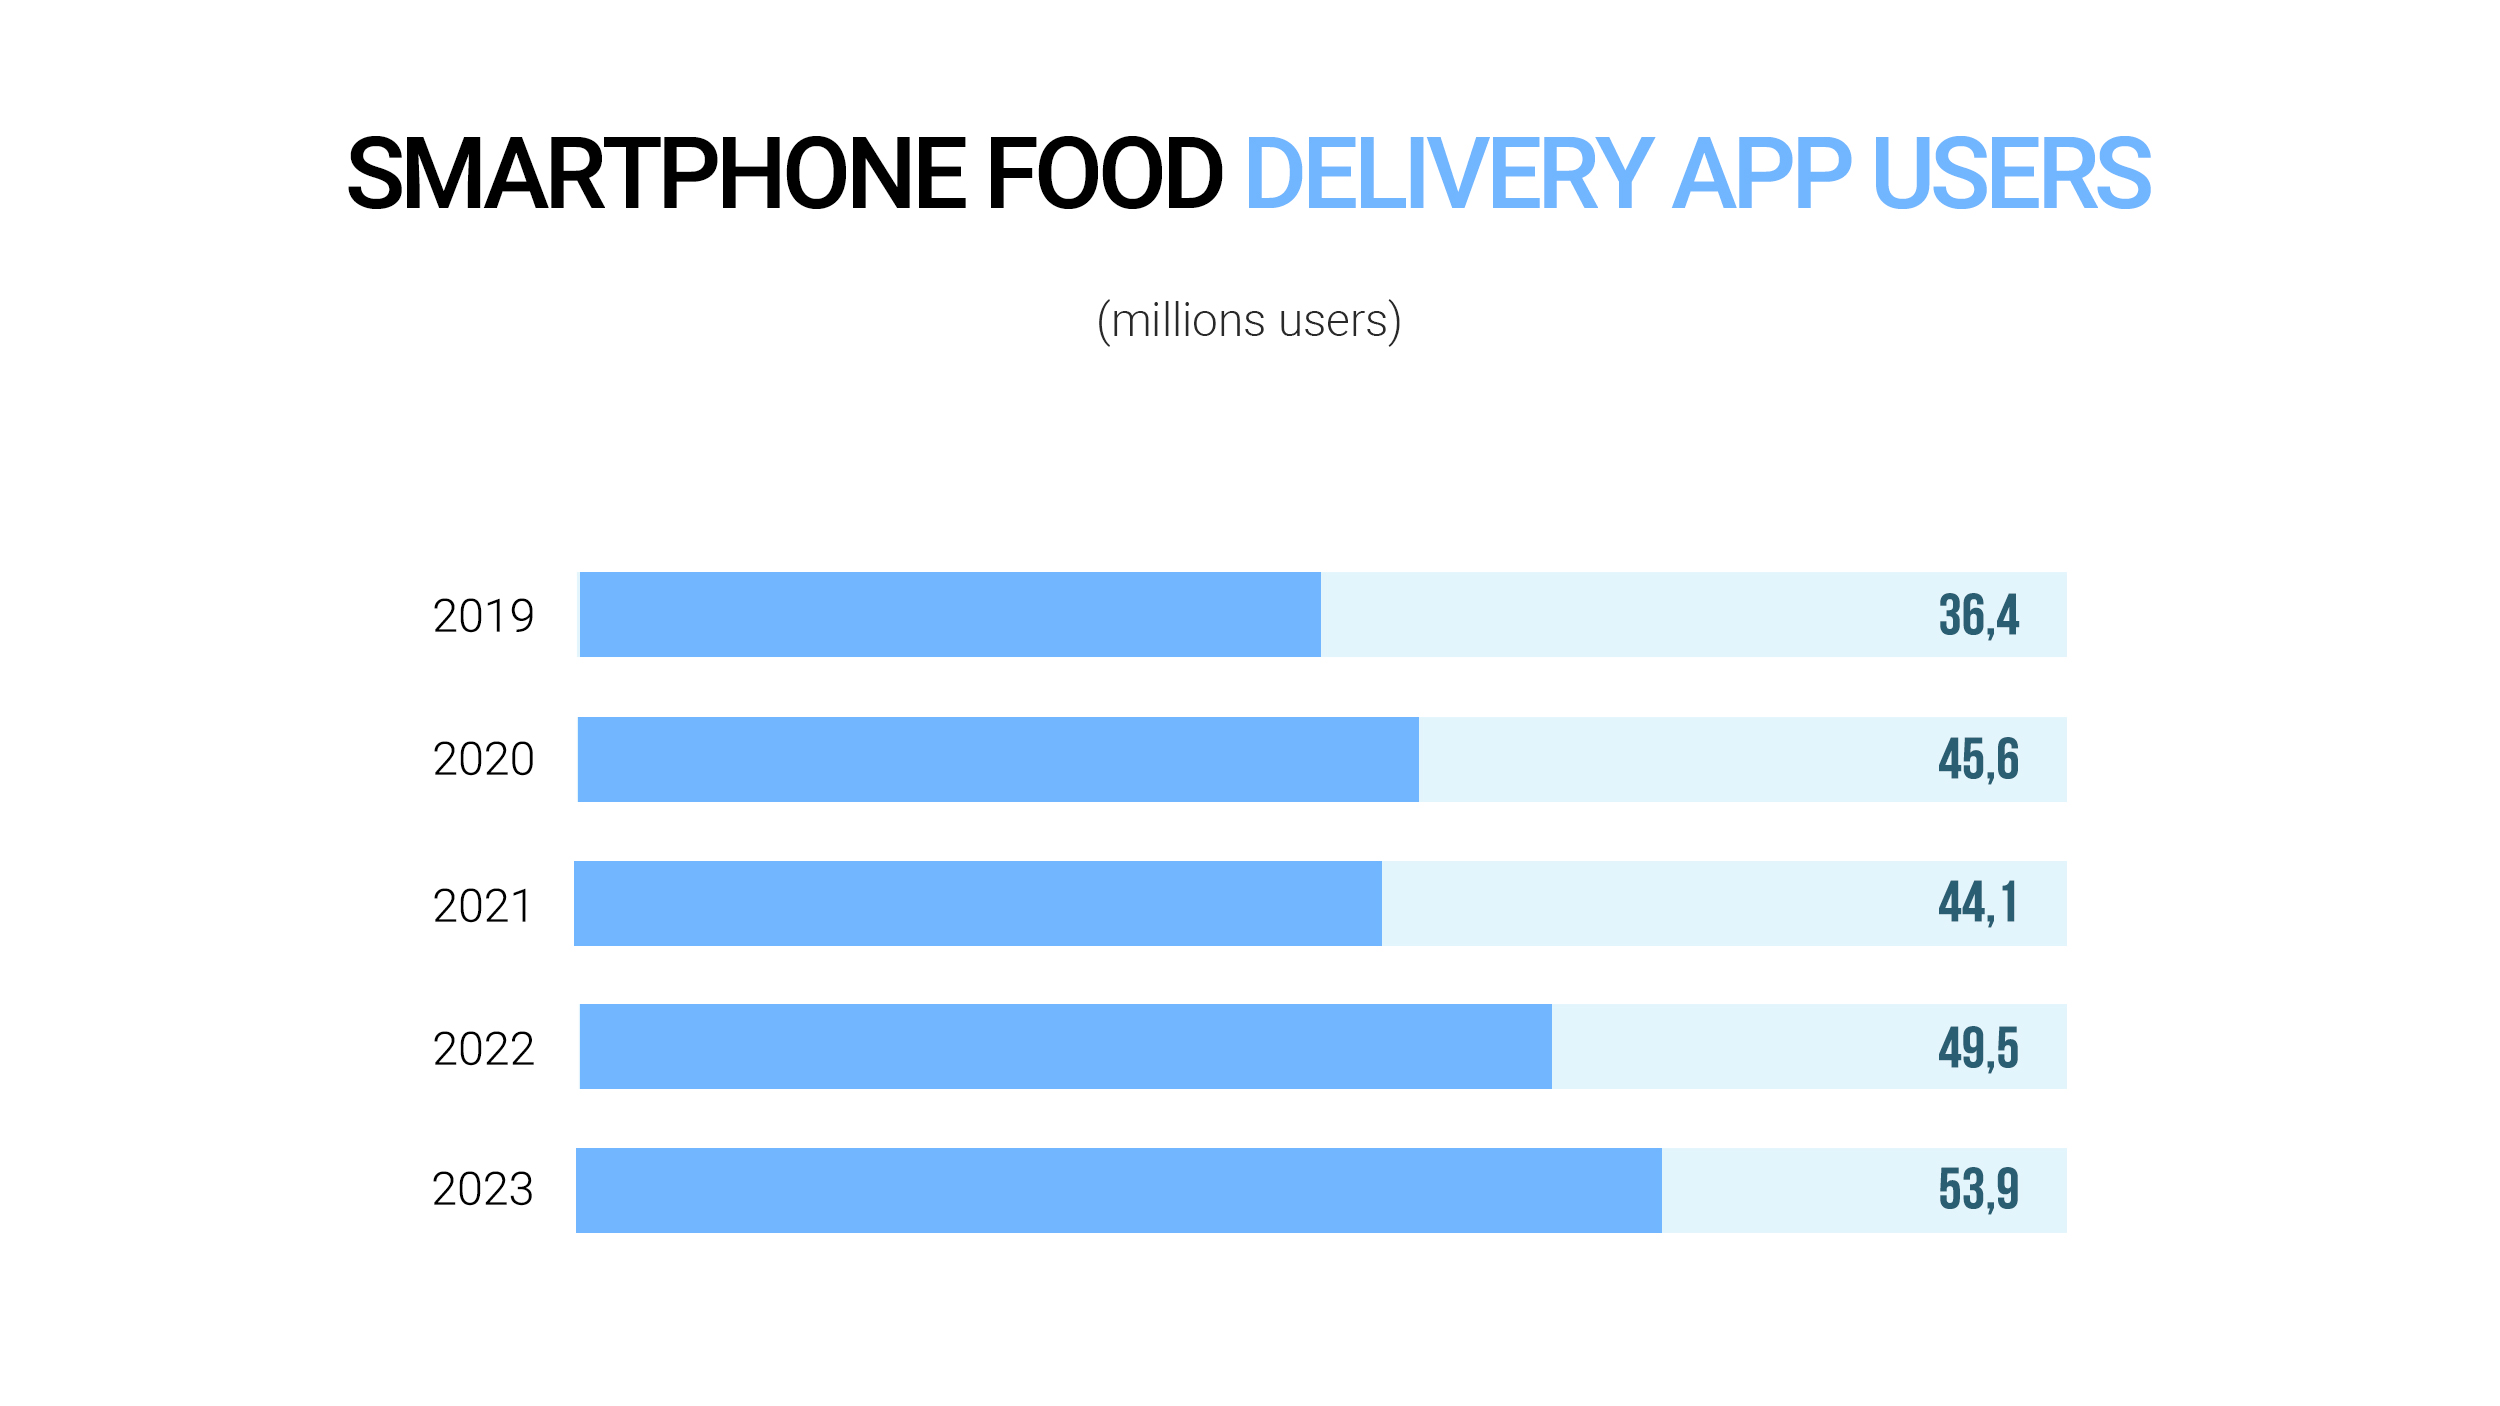 The number of smartphone food delivery app users